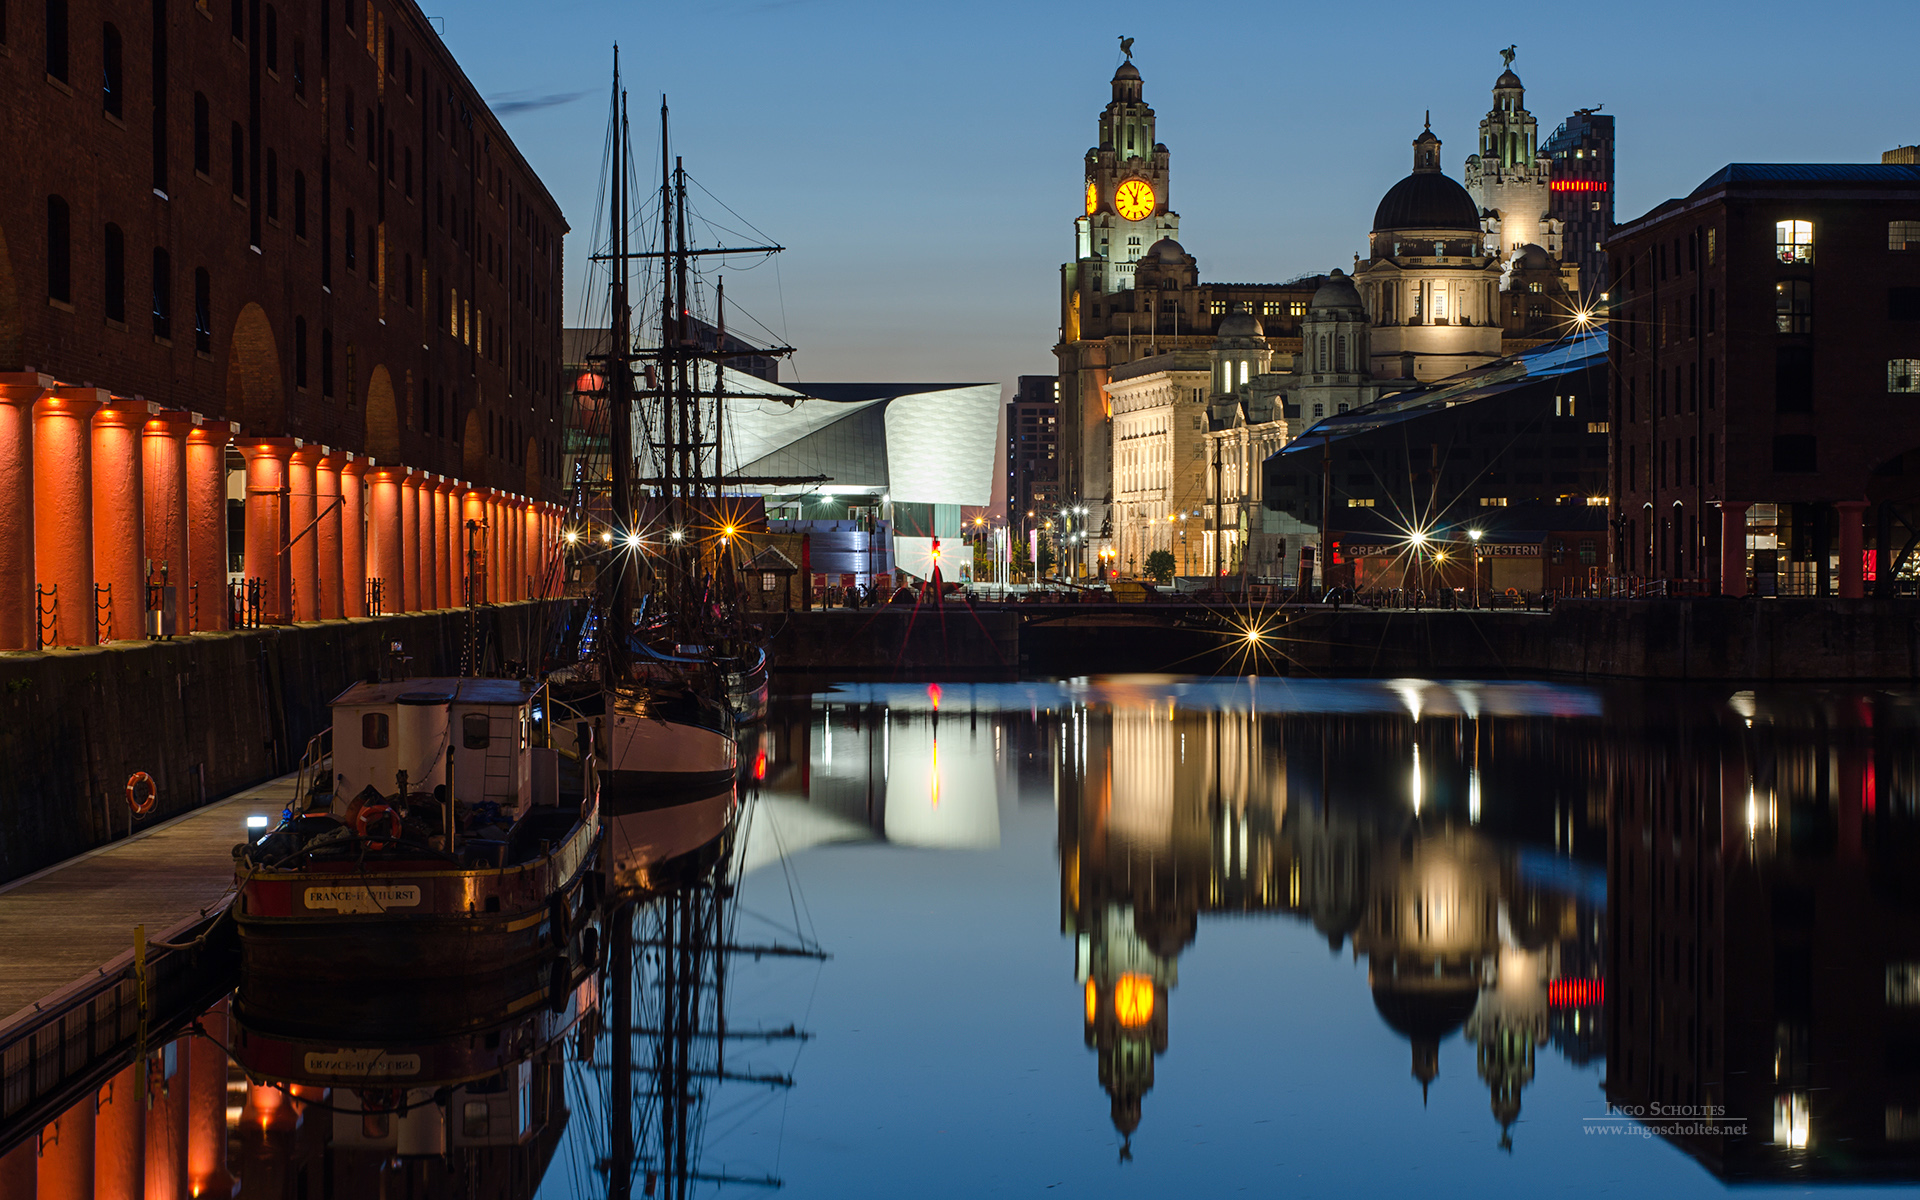 Albert Dock, Liverpool, England, U.K.